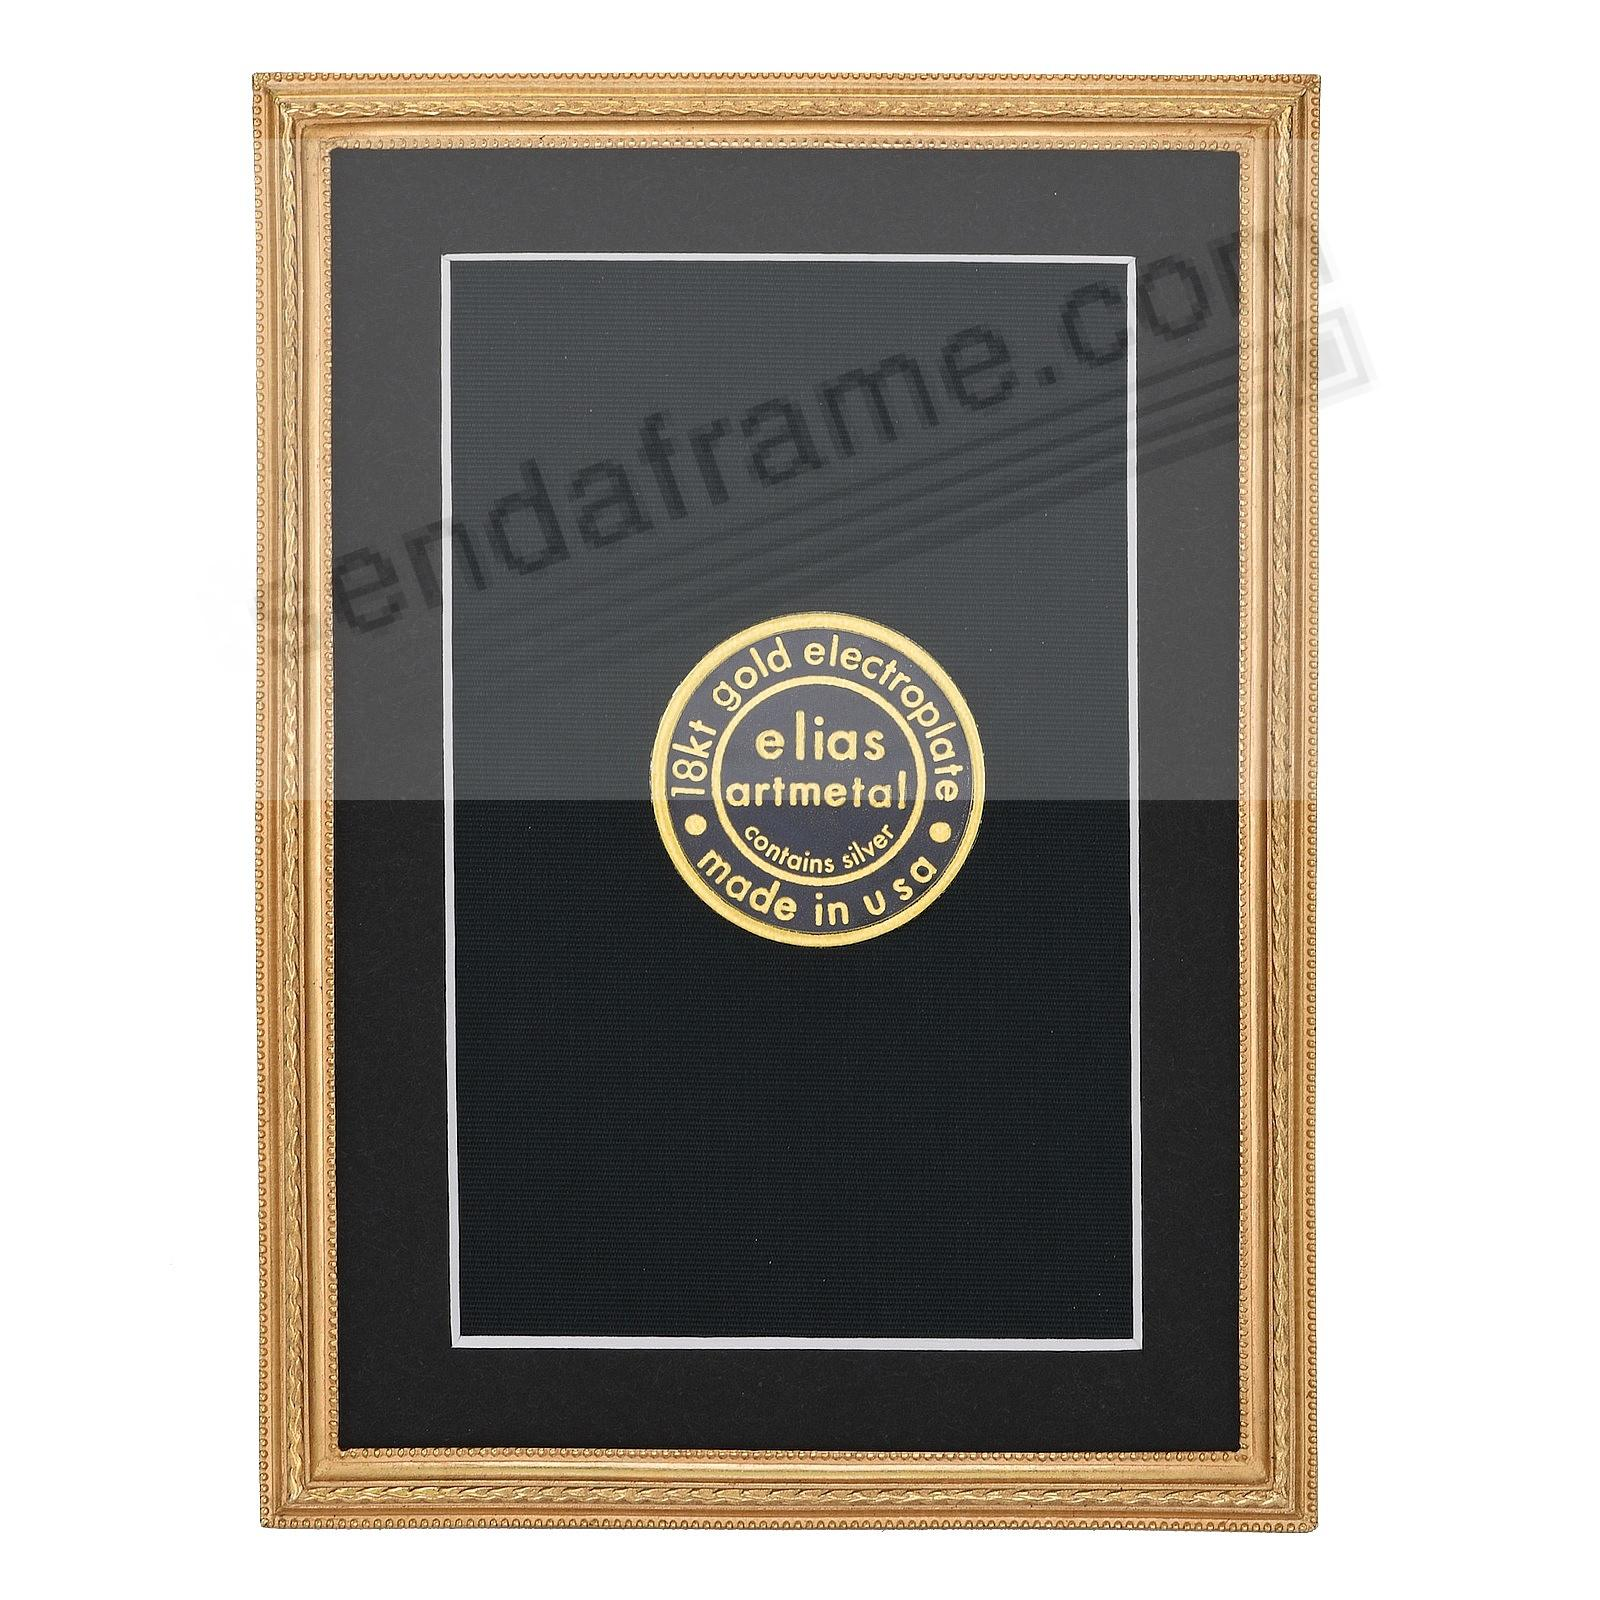 CAPSTONE 18kt Gold Vermeil Over Fine Pewter frame 3½x5 by Elias Artmetal®